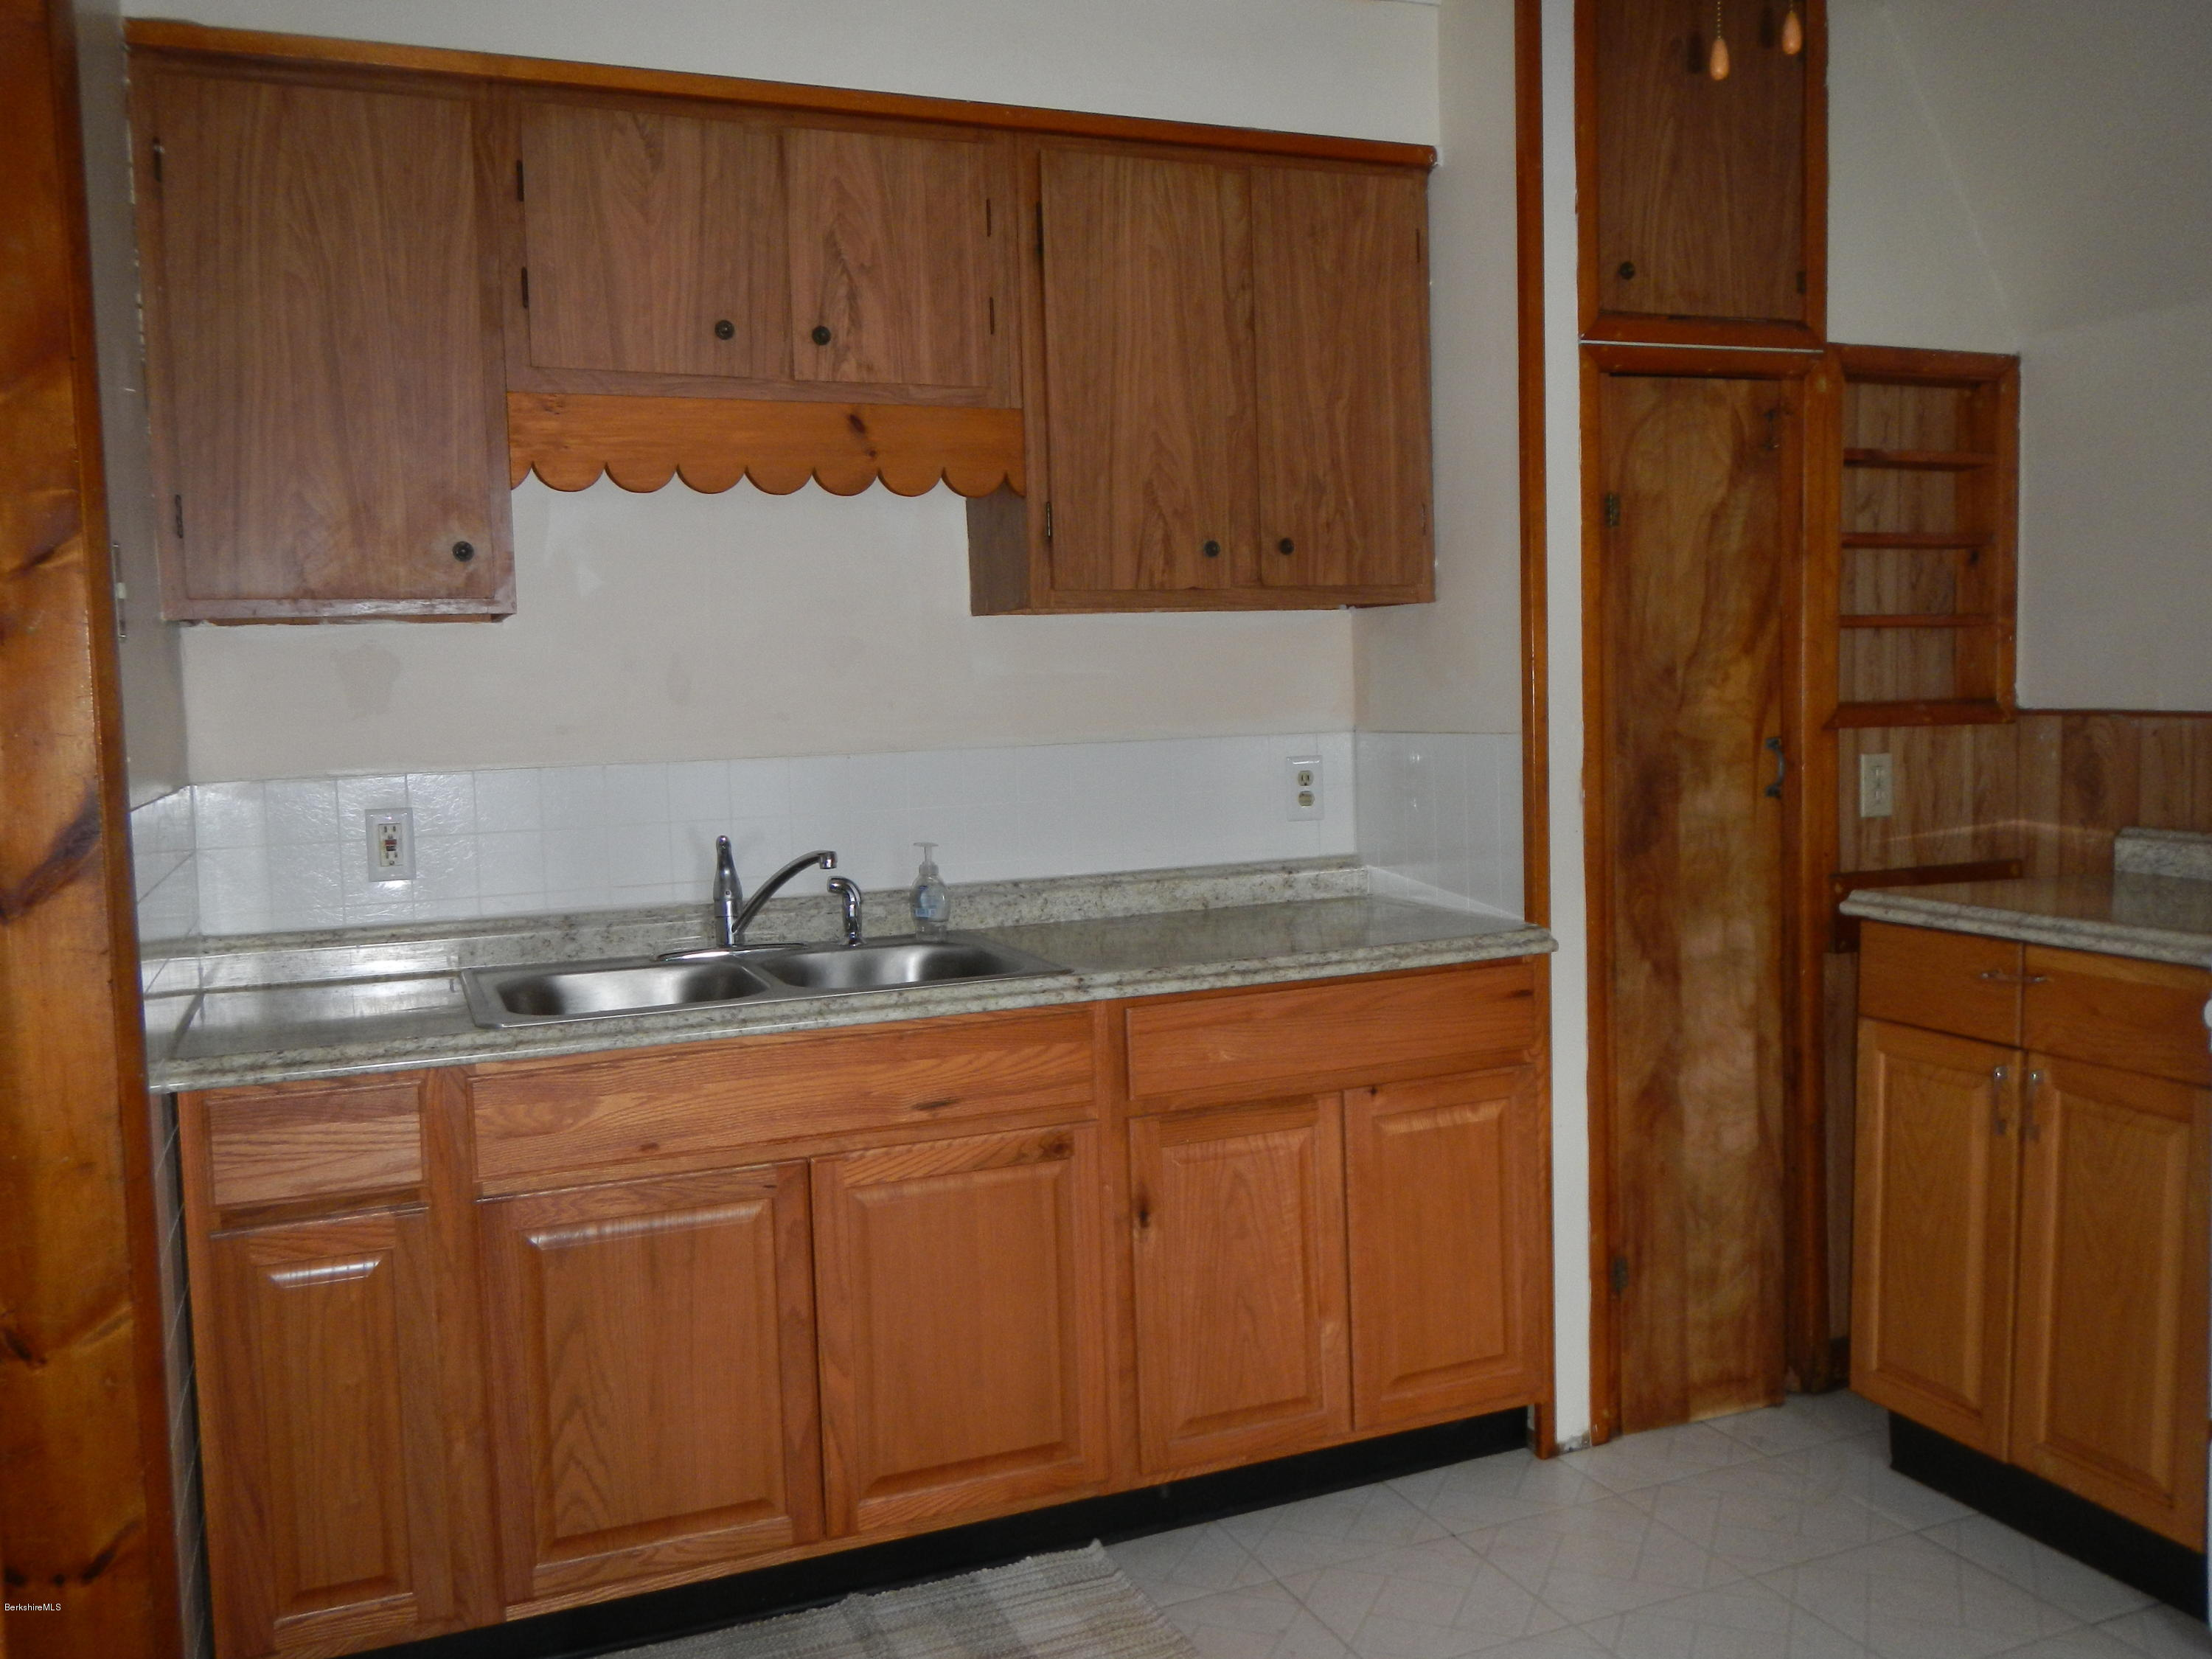 2nd floor kitchen